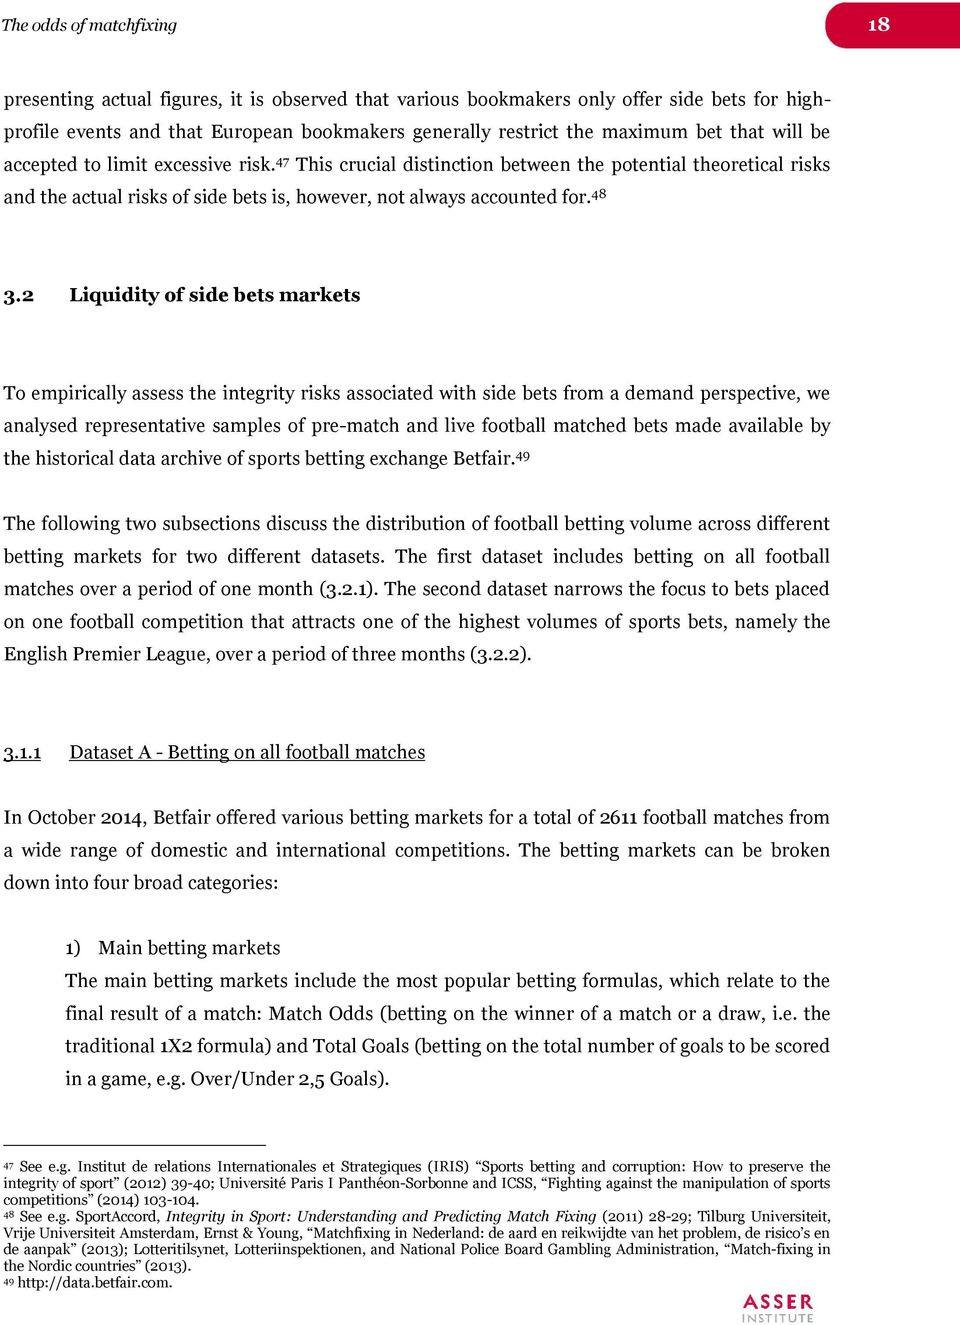 THE ODDS OF MATCH FIXING FACTS & FIGURES ON THE INTEGRITY